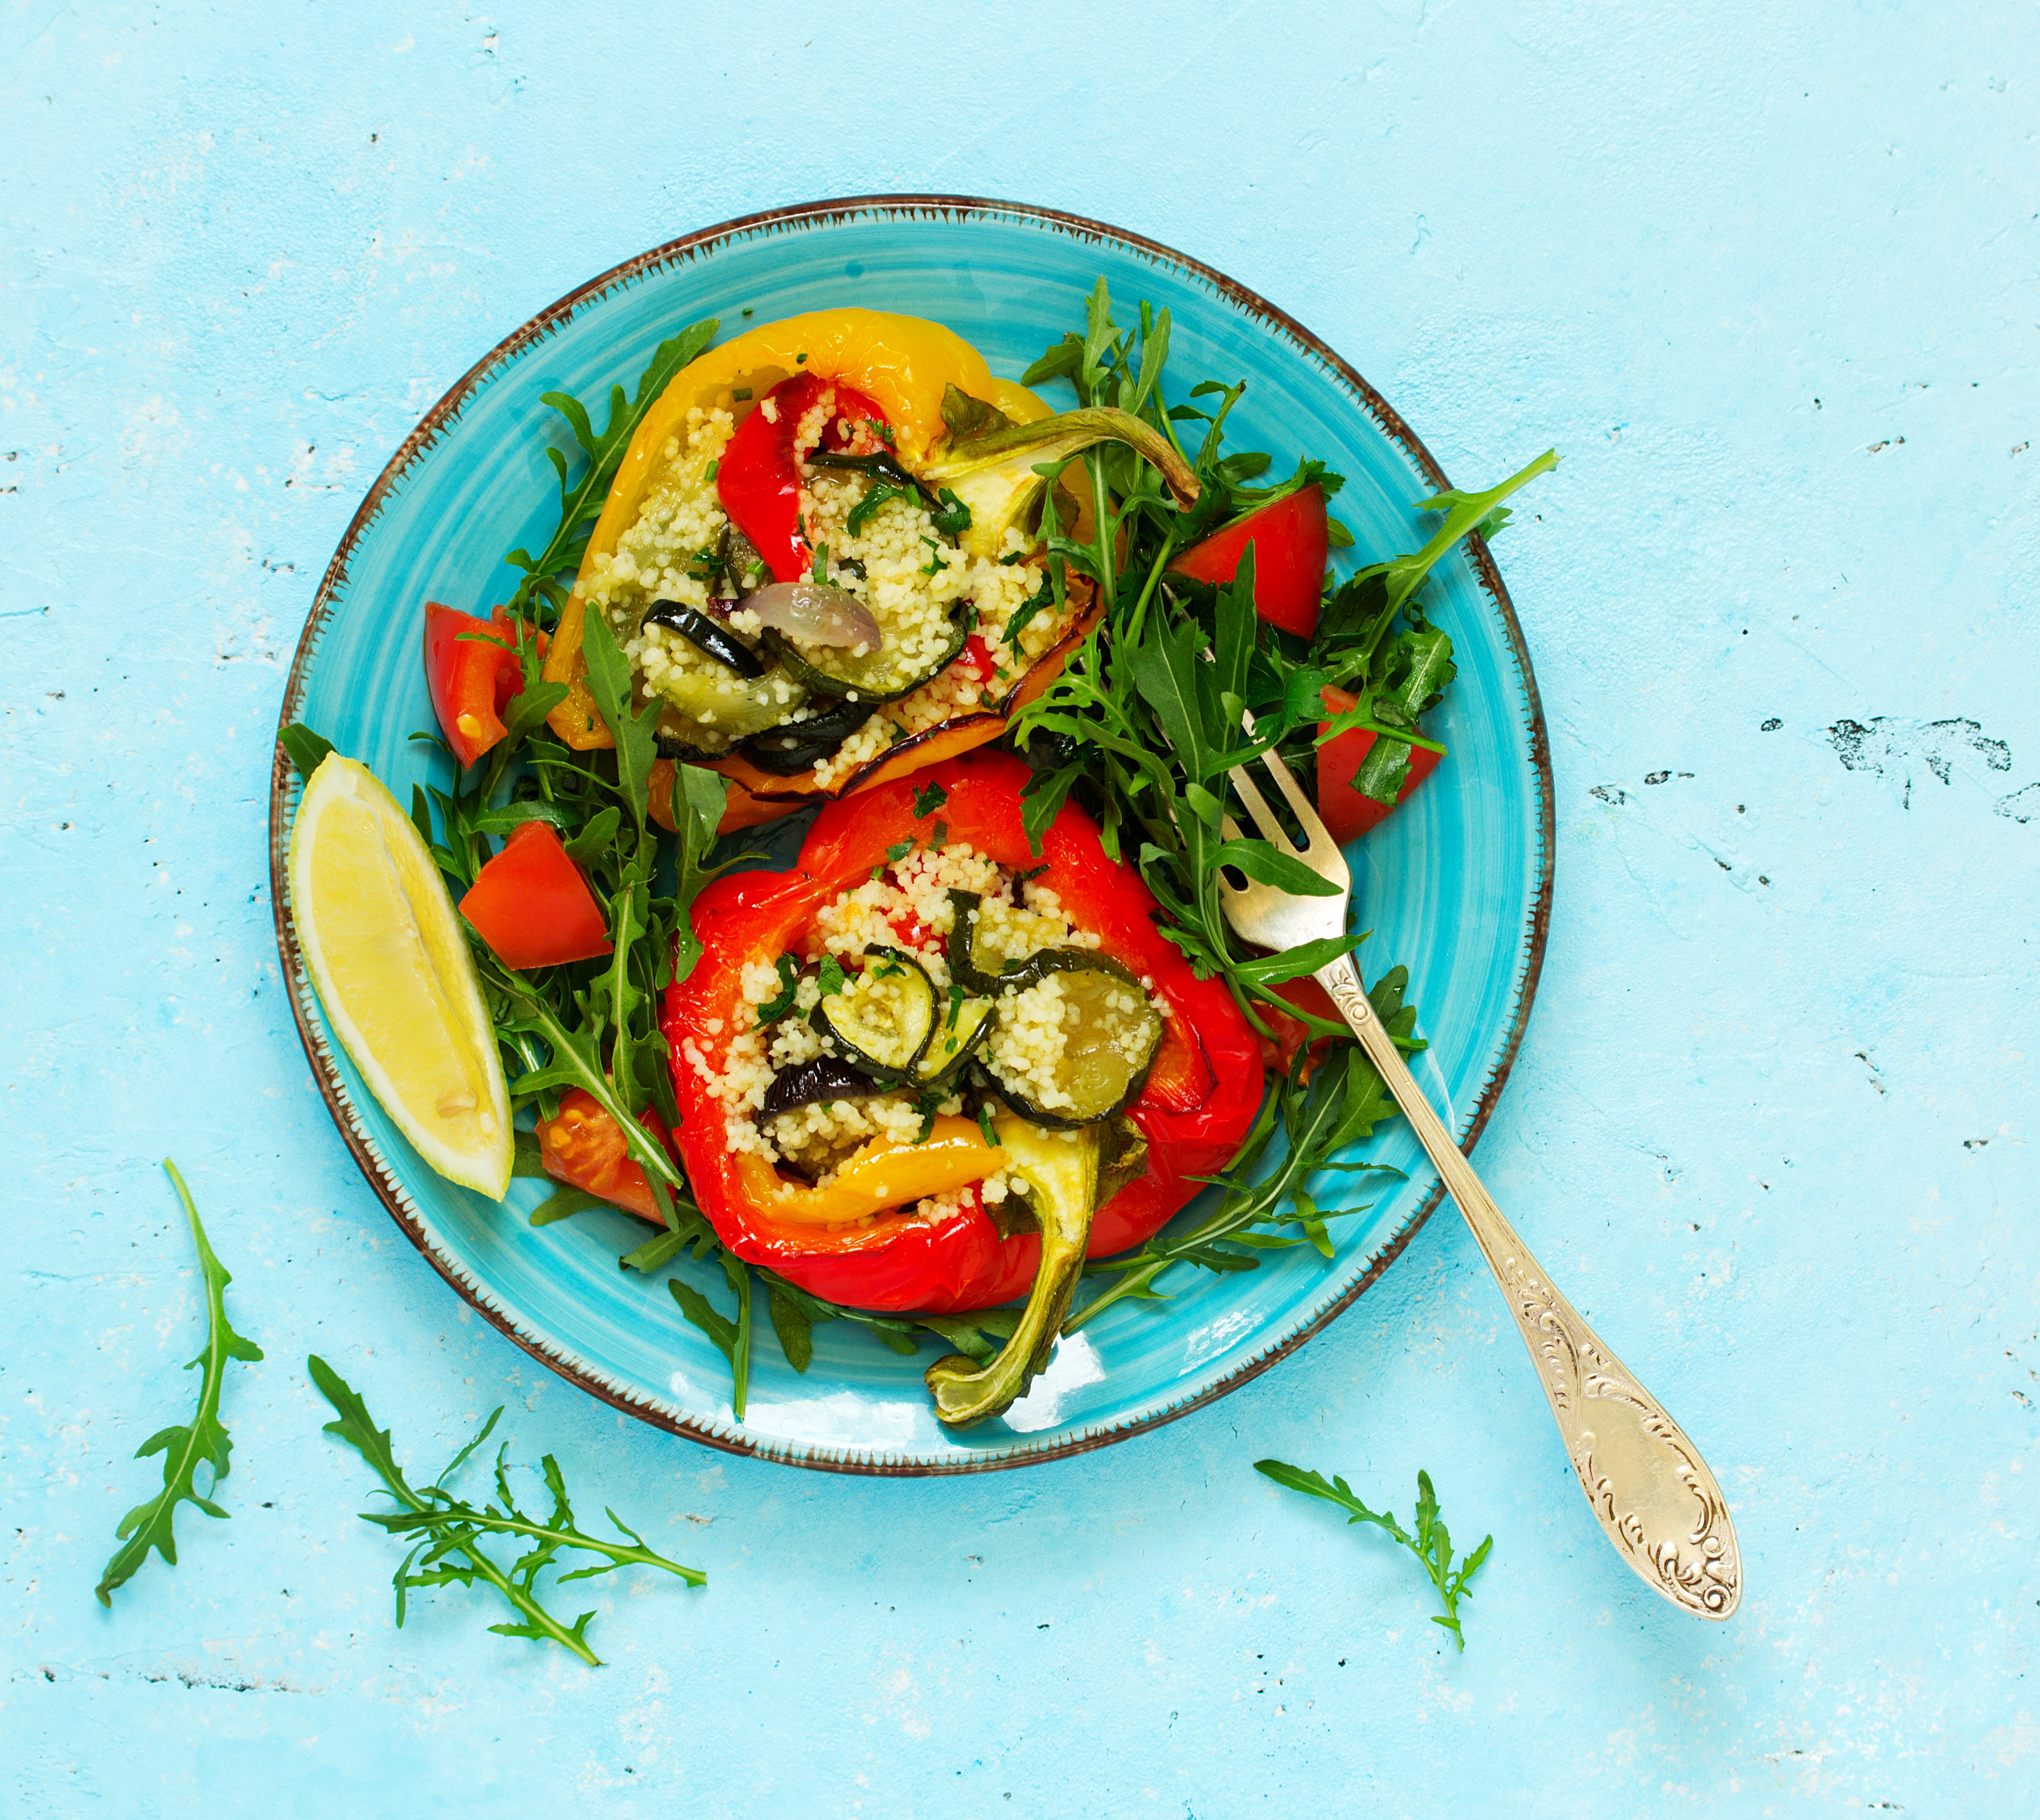 Stuffed Peppers with Courgette, Feta and Mint Salad